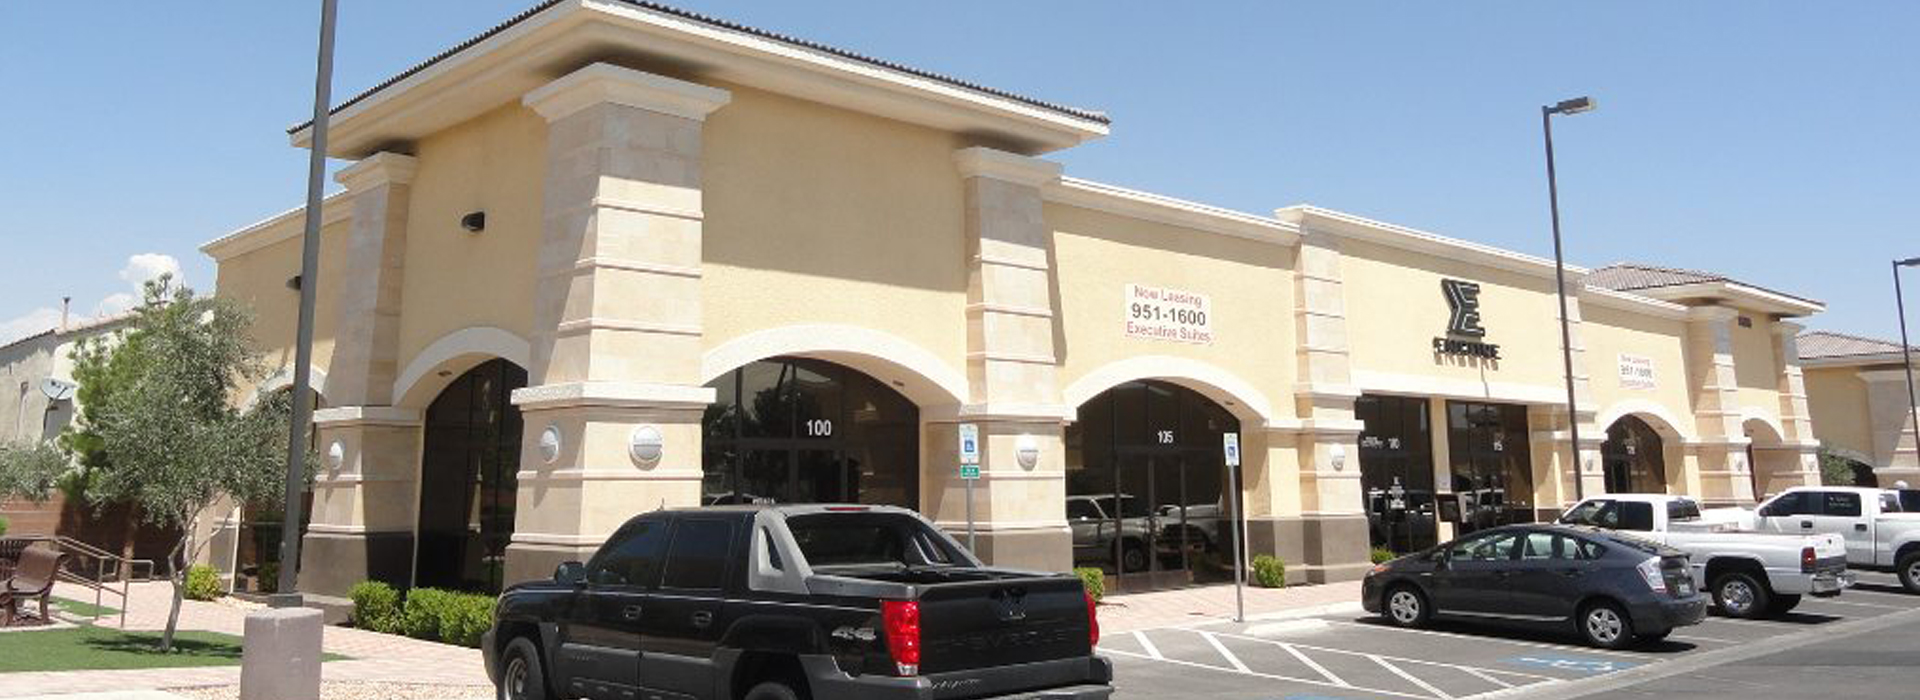 <small>COMMERCIAL LEASE 80-200 SQ FT</small>9680 W Tropicana Ave , Las Vegas, NV